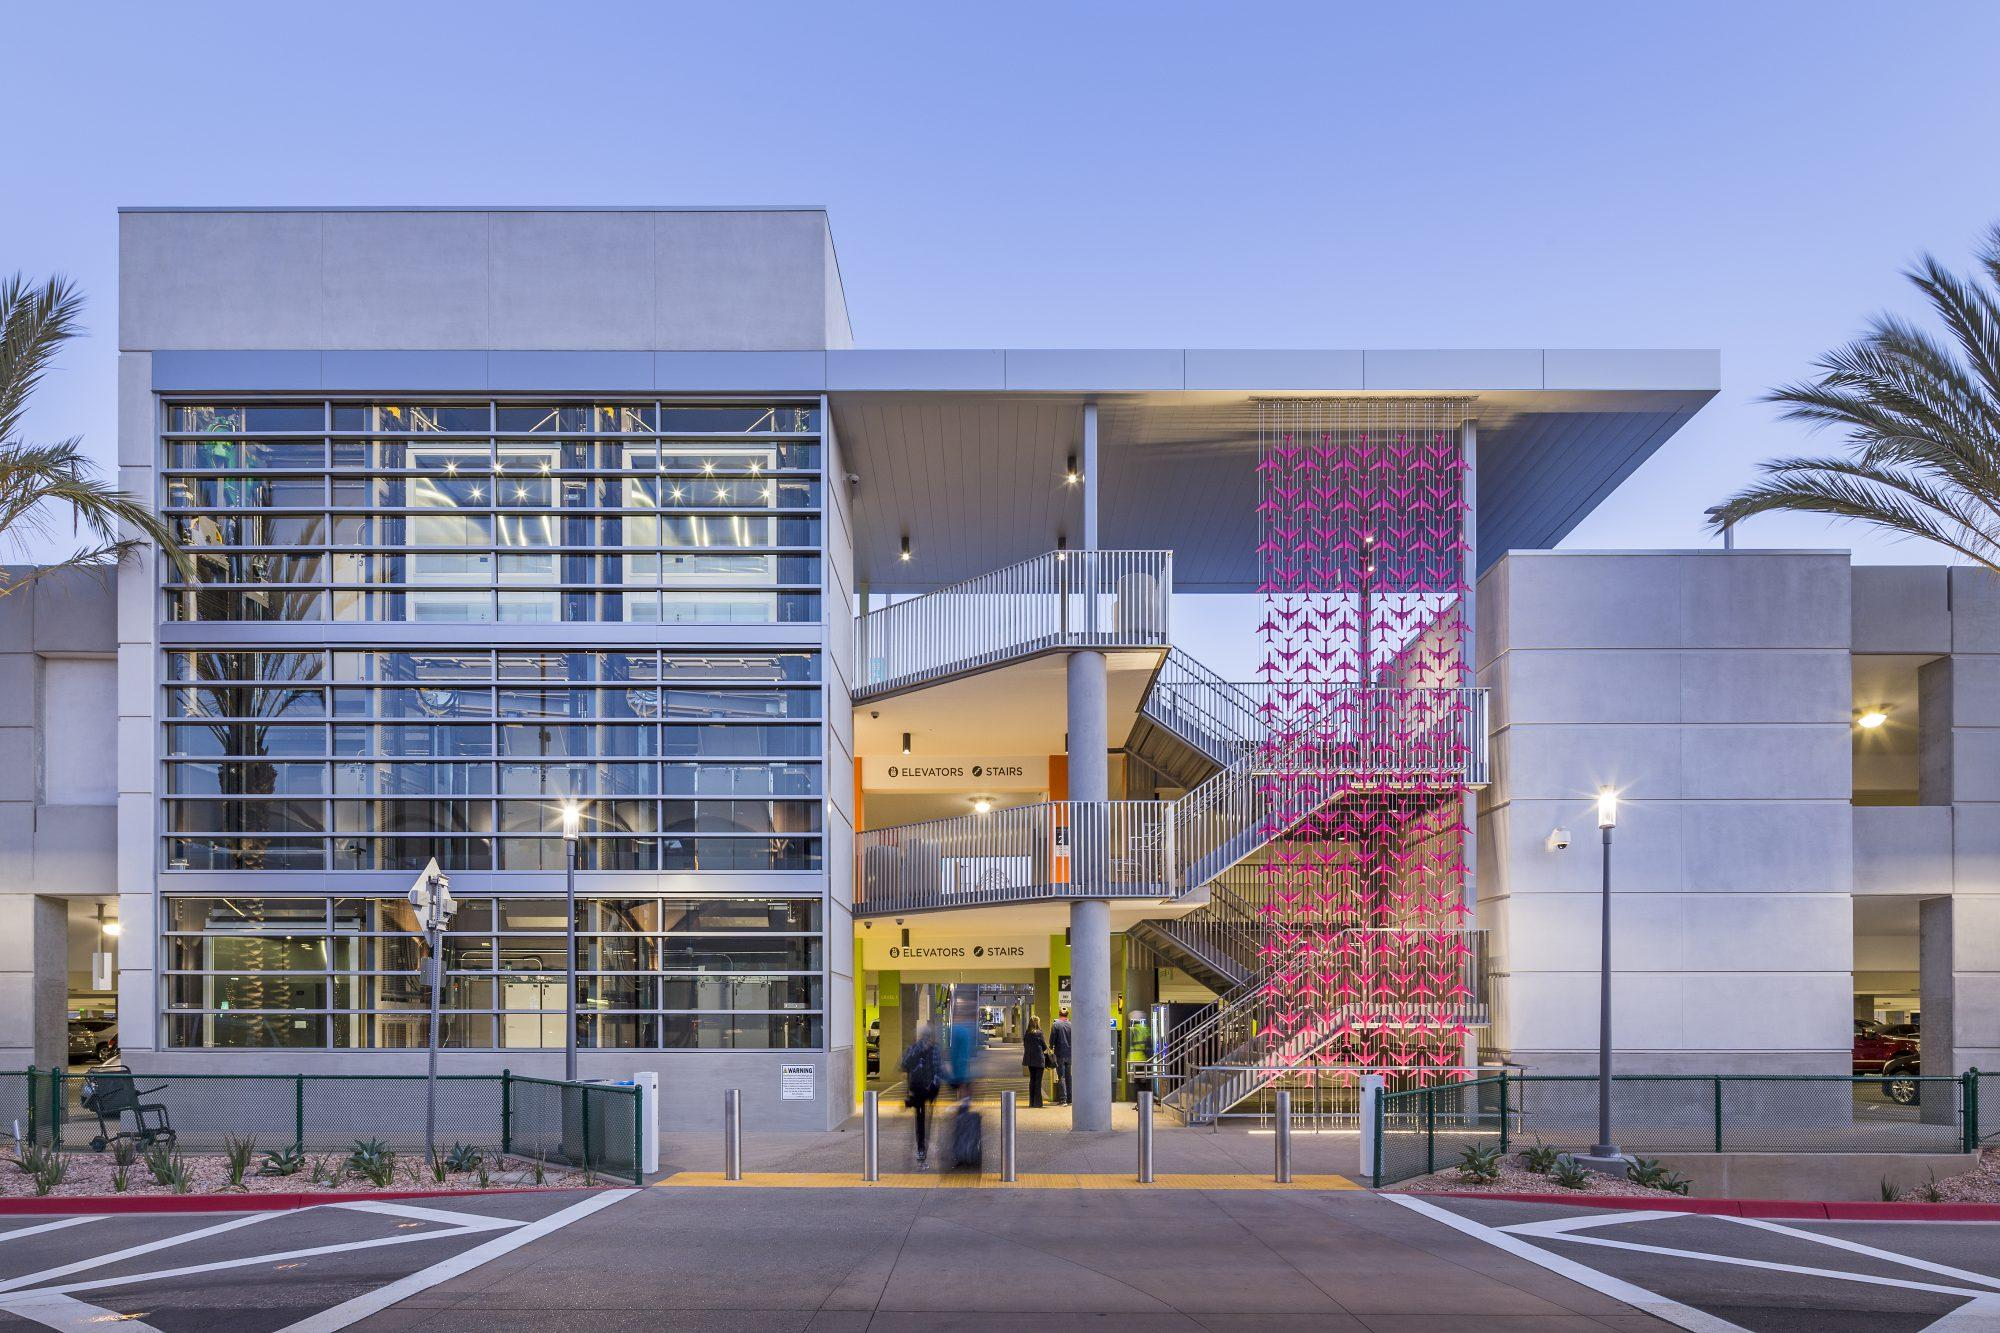 Here's What $5 Million In Public Art At KCI's New Terminal